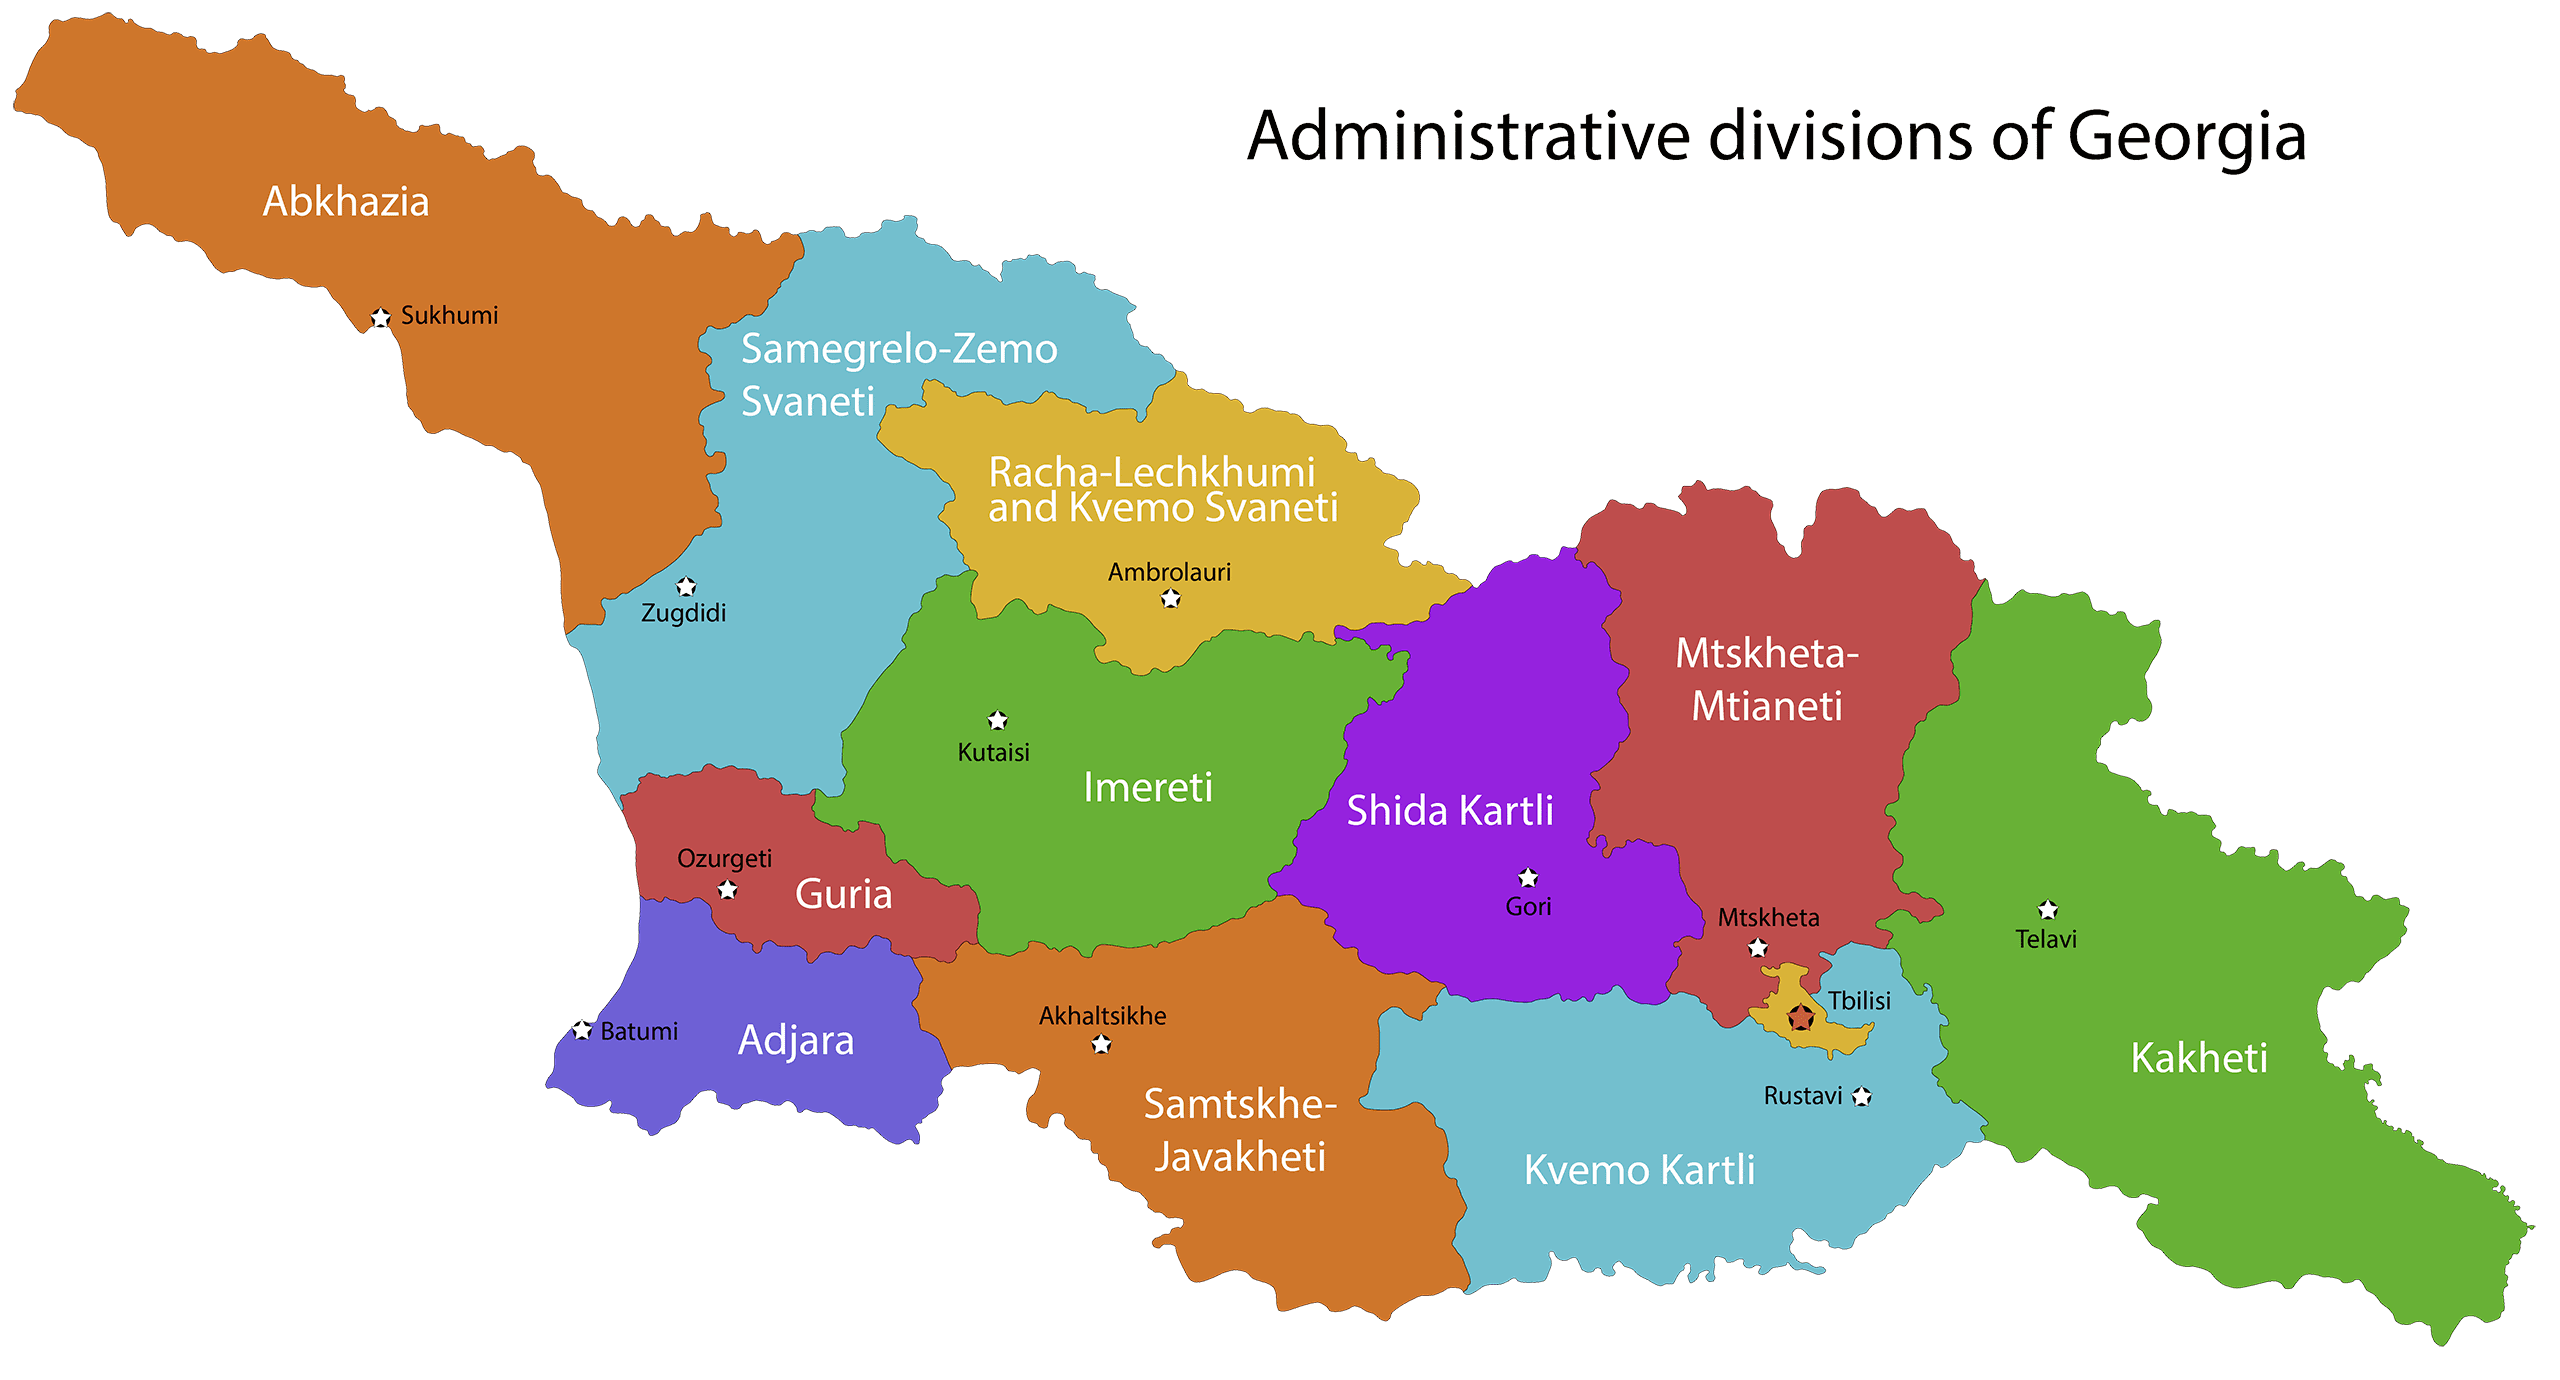 administrative divisions of georgia, Грузия